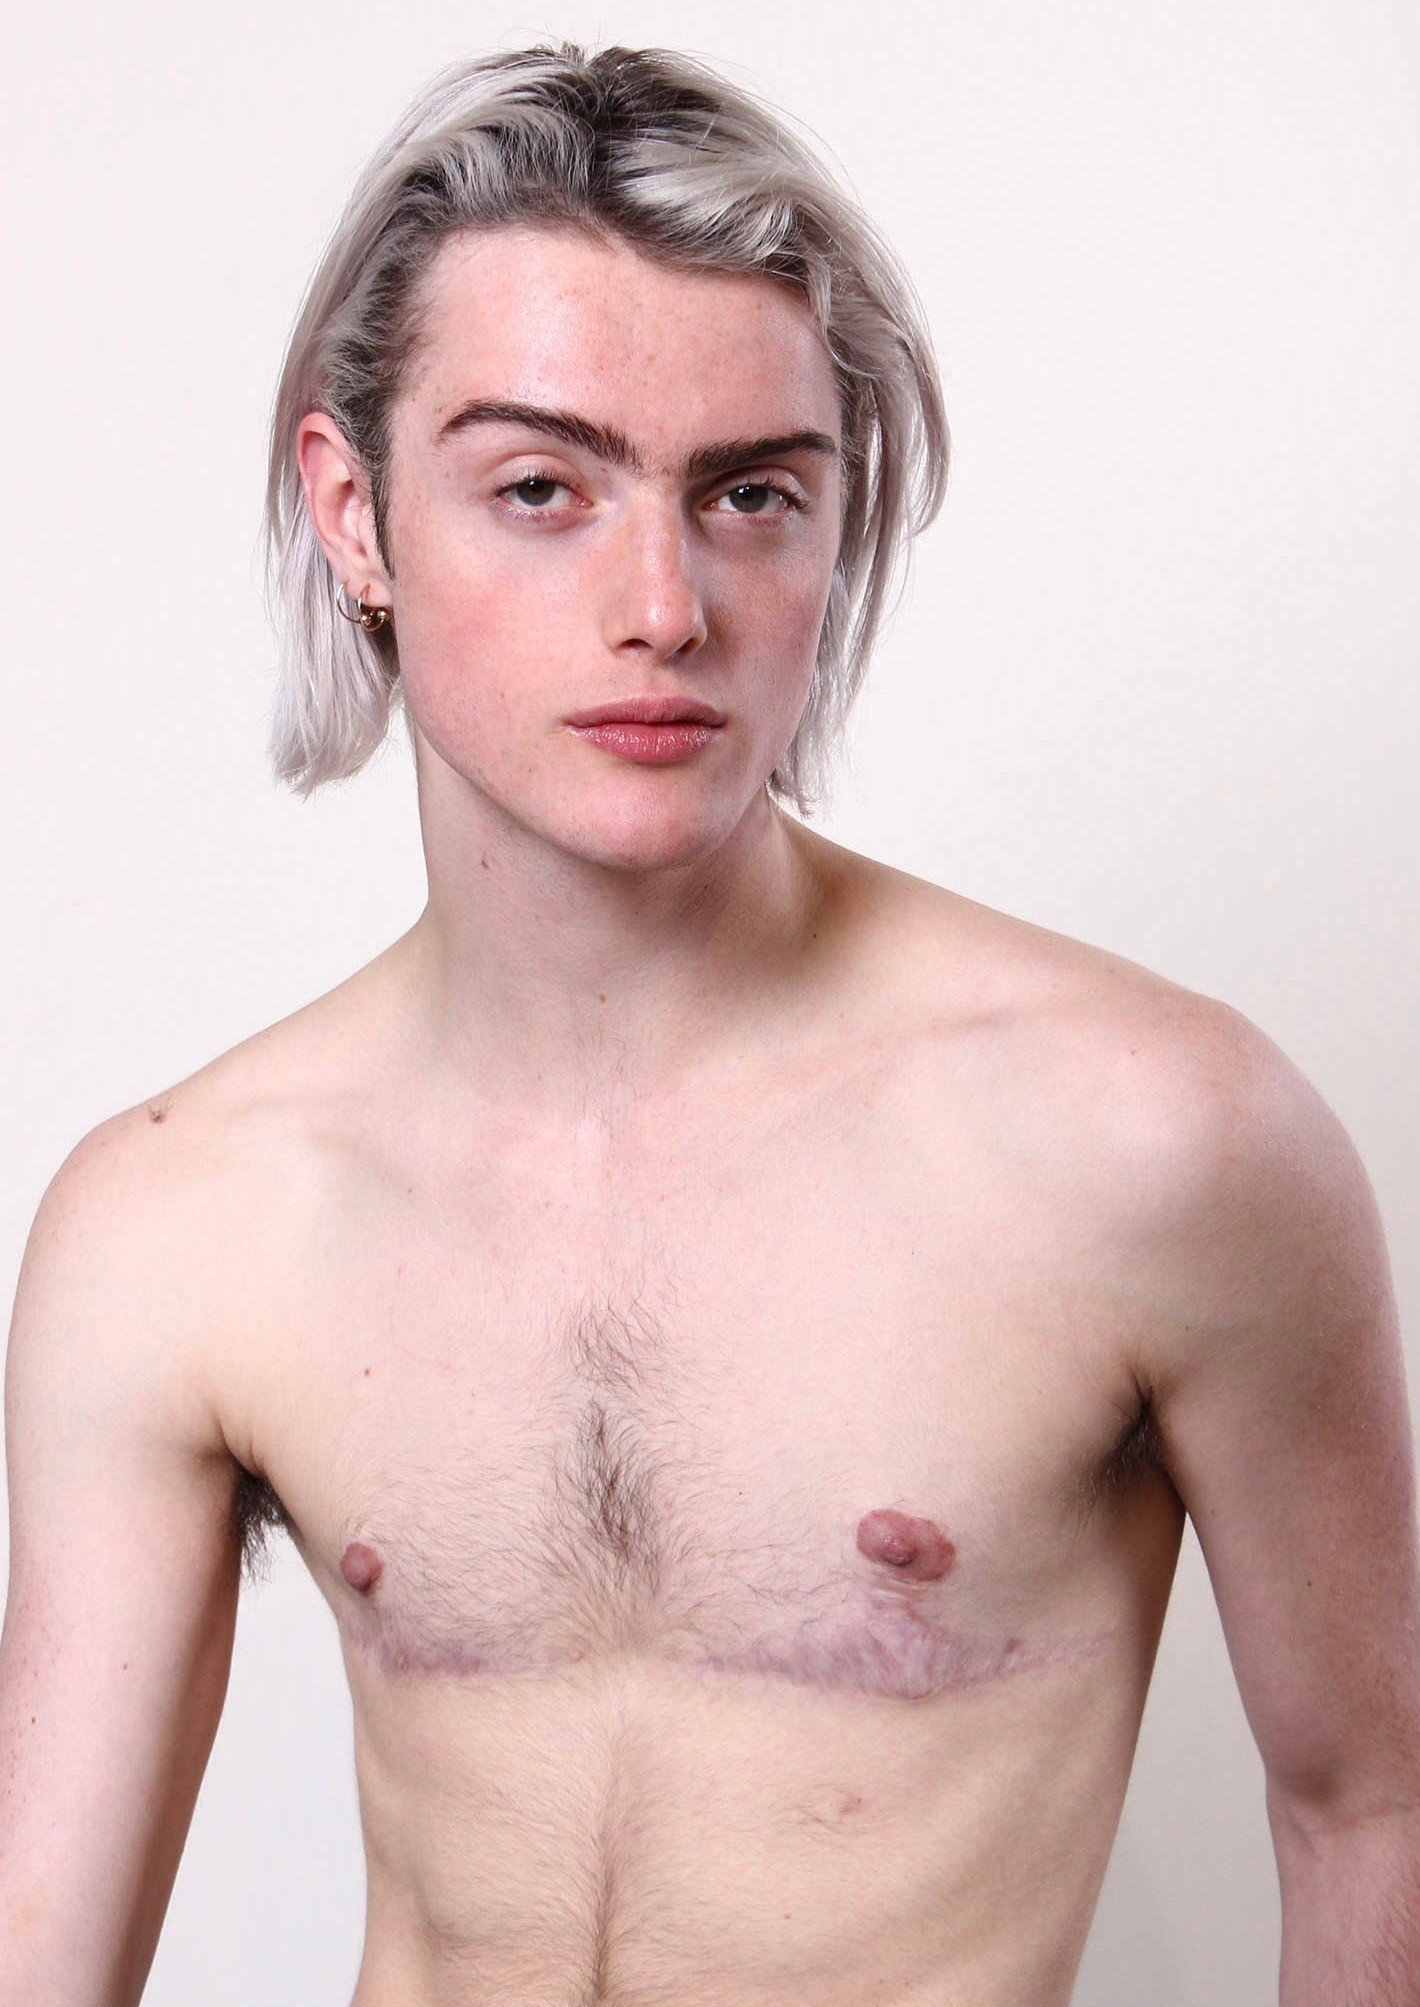 Transgender models six trans men making their mark on modelling world from buck angel to casil mcarthur